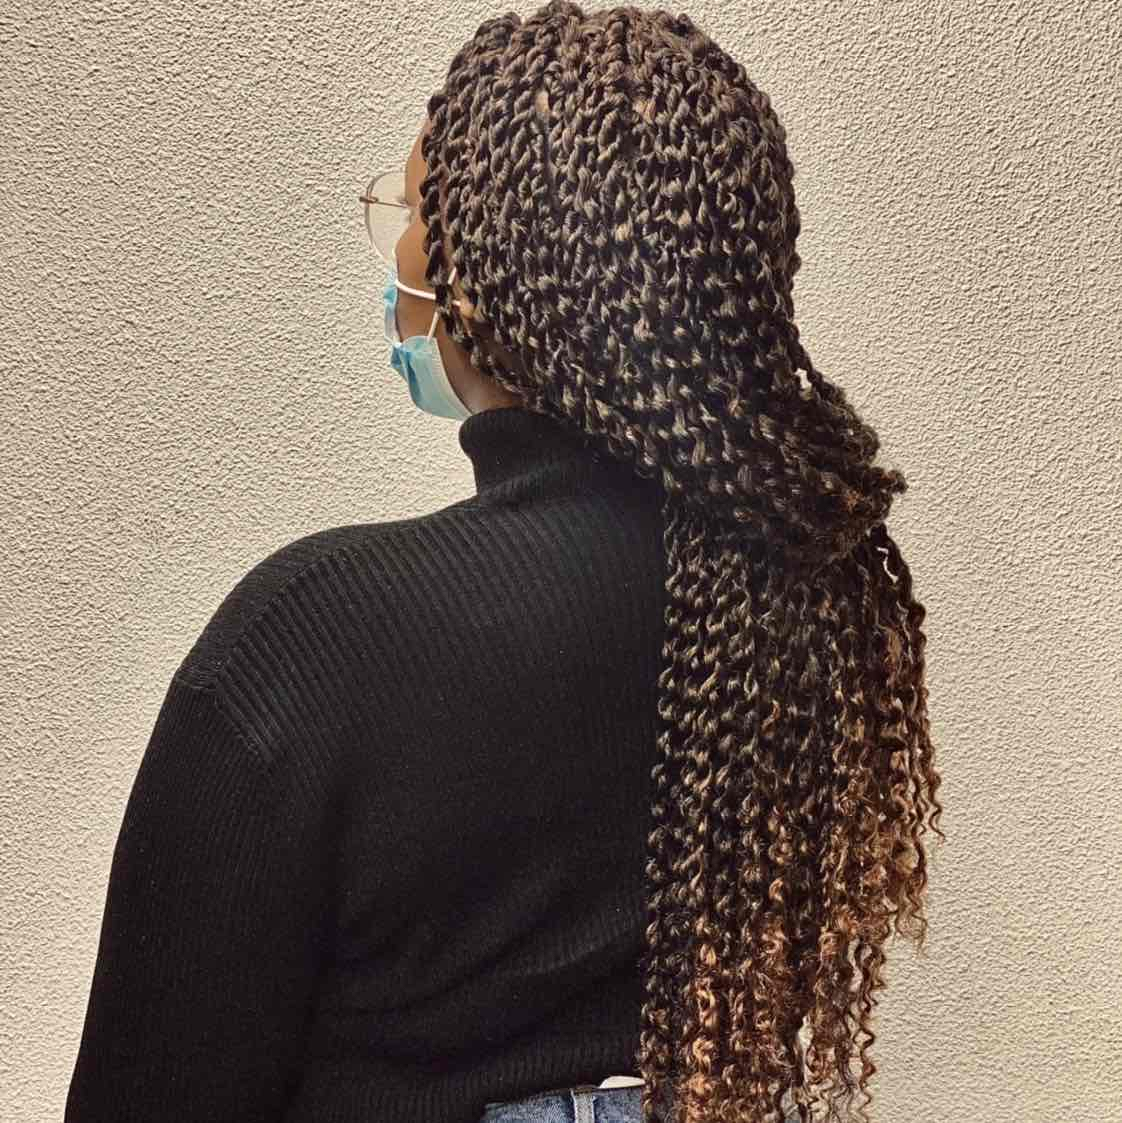 salon de coiffure afro tresse tresses box braids crochet braids vanilles tissages paris 75 77 78 91 92 93 94 95 CIFBHJKH